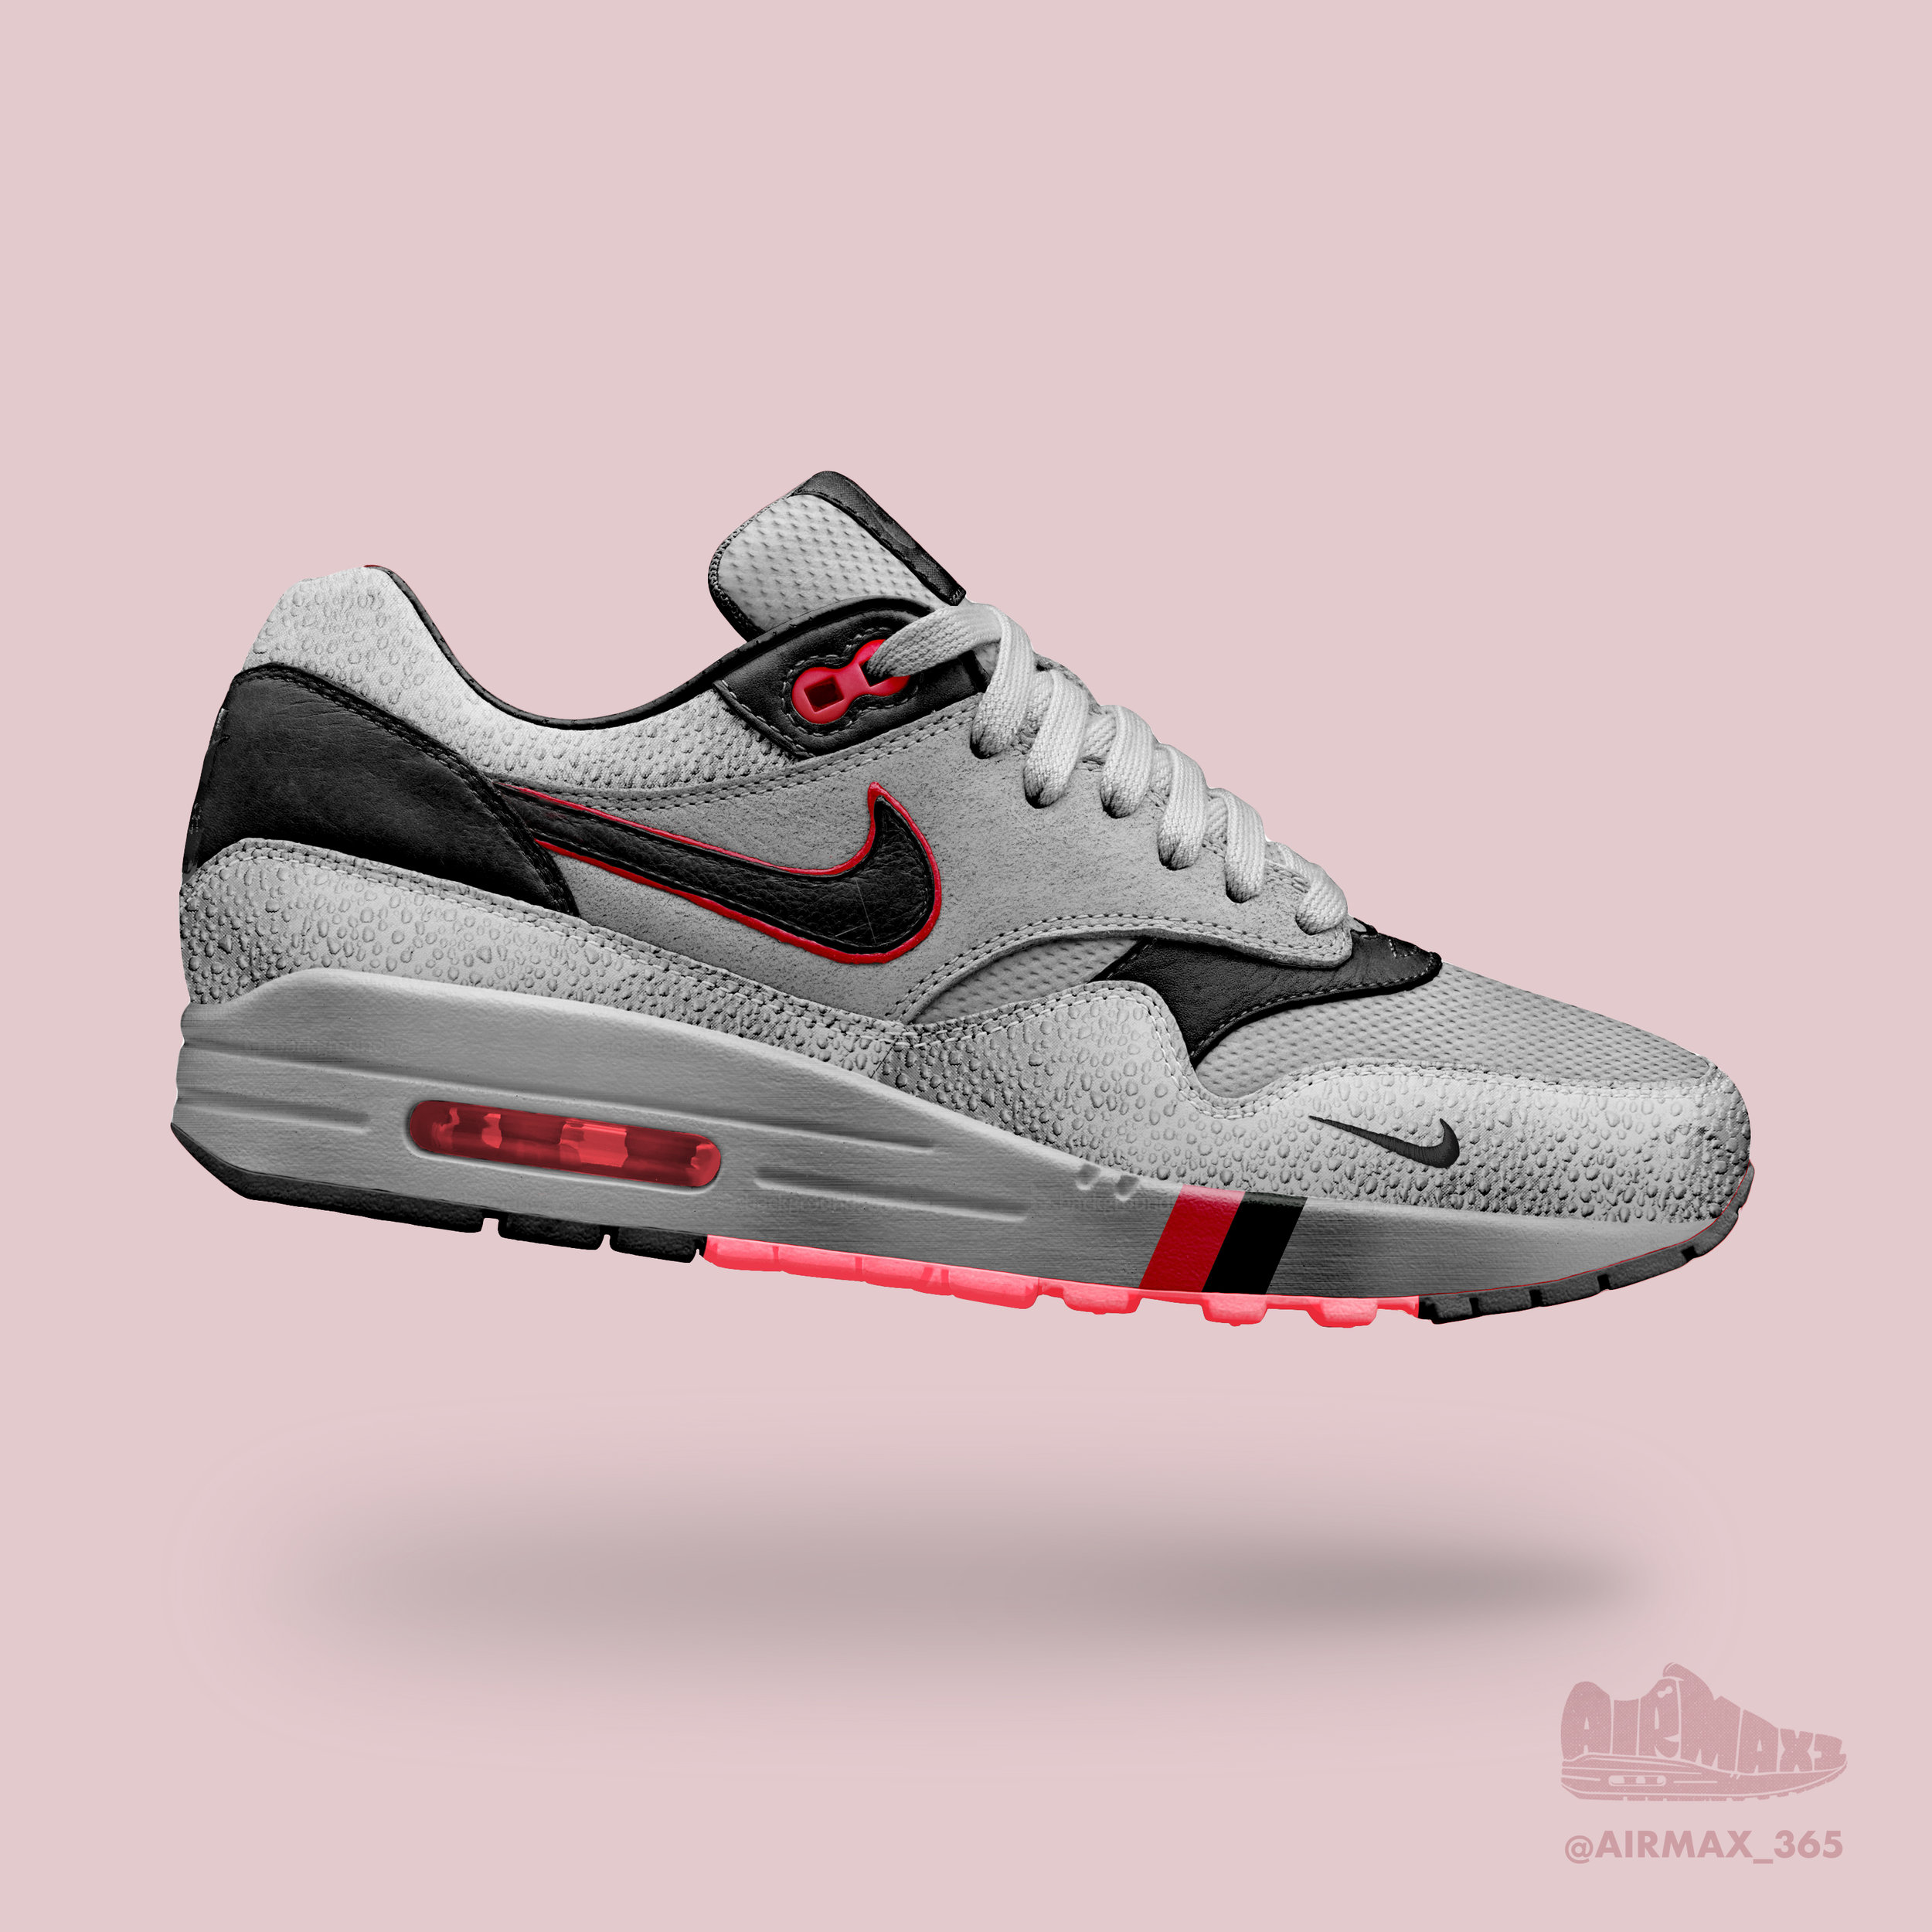 Day 193: Air Max 1 Fortune